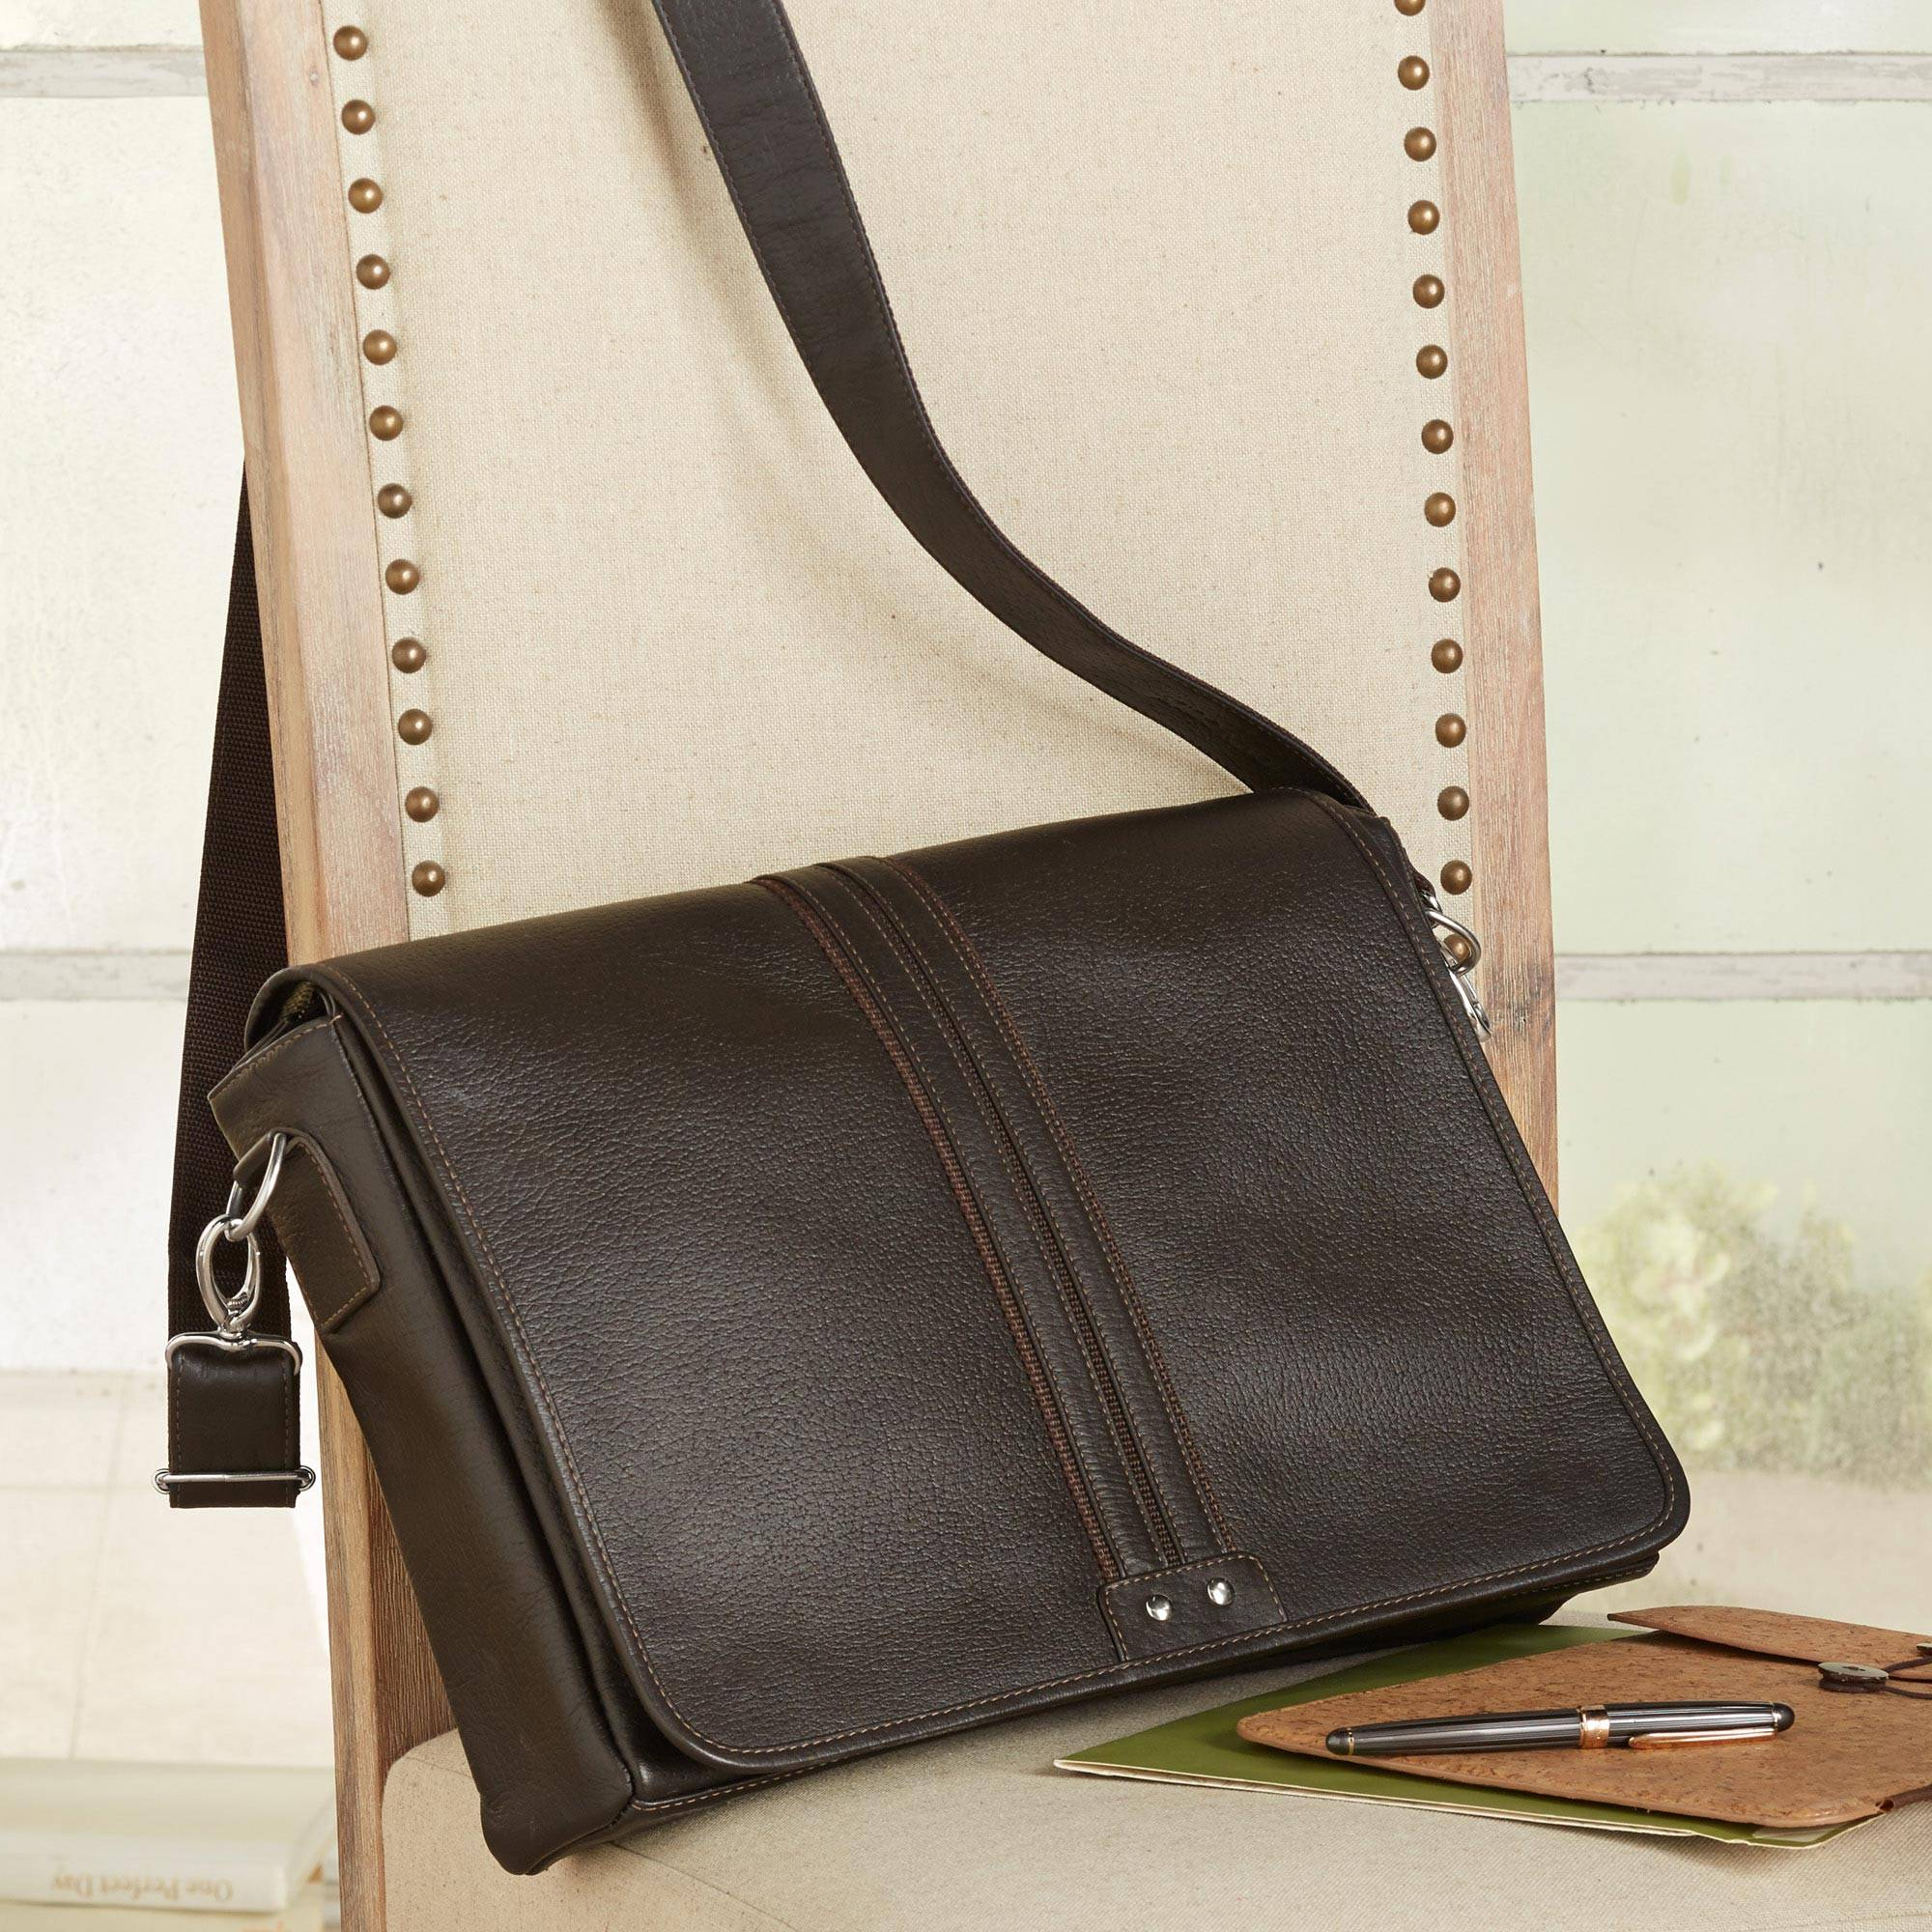 Alluring Altiplano Unisex Brown Leather Messenger Bag from Bolivia Father's Day Gifting